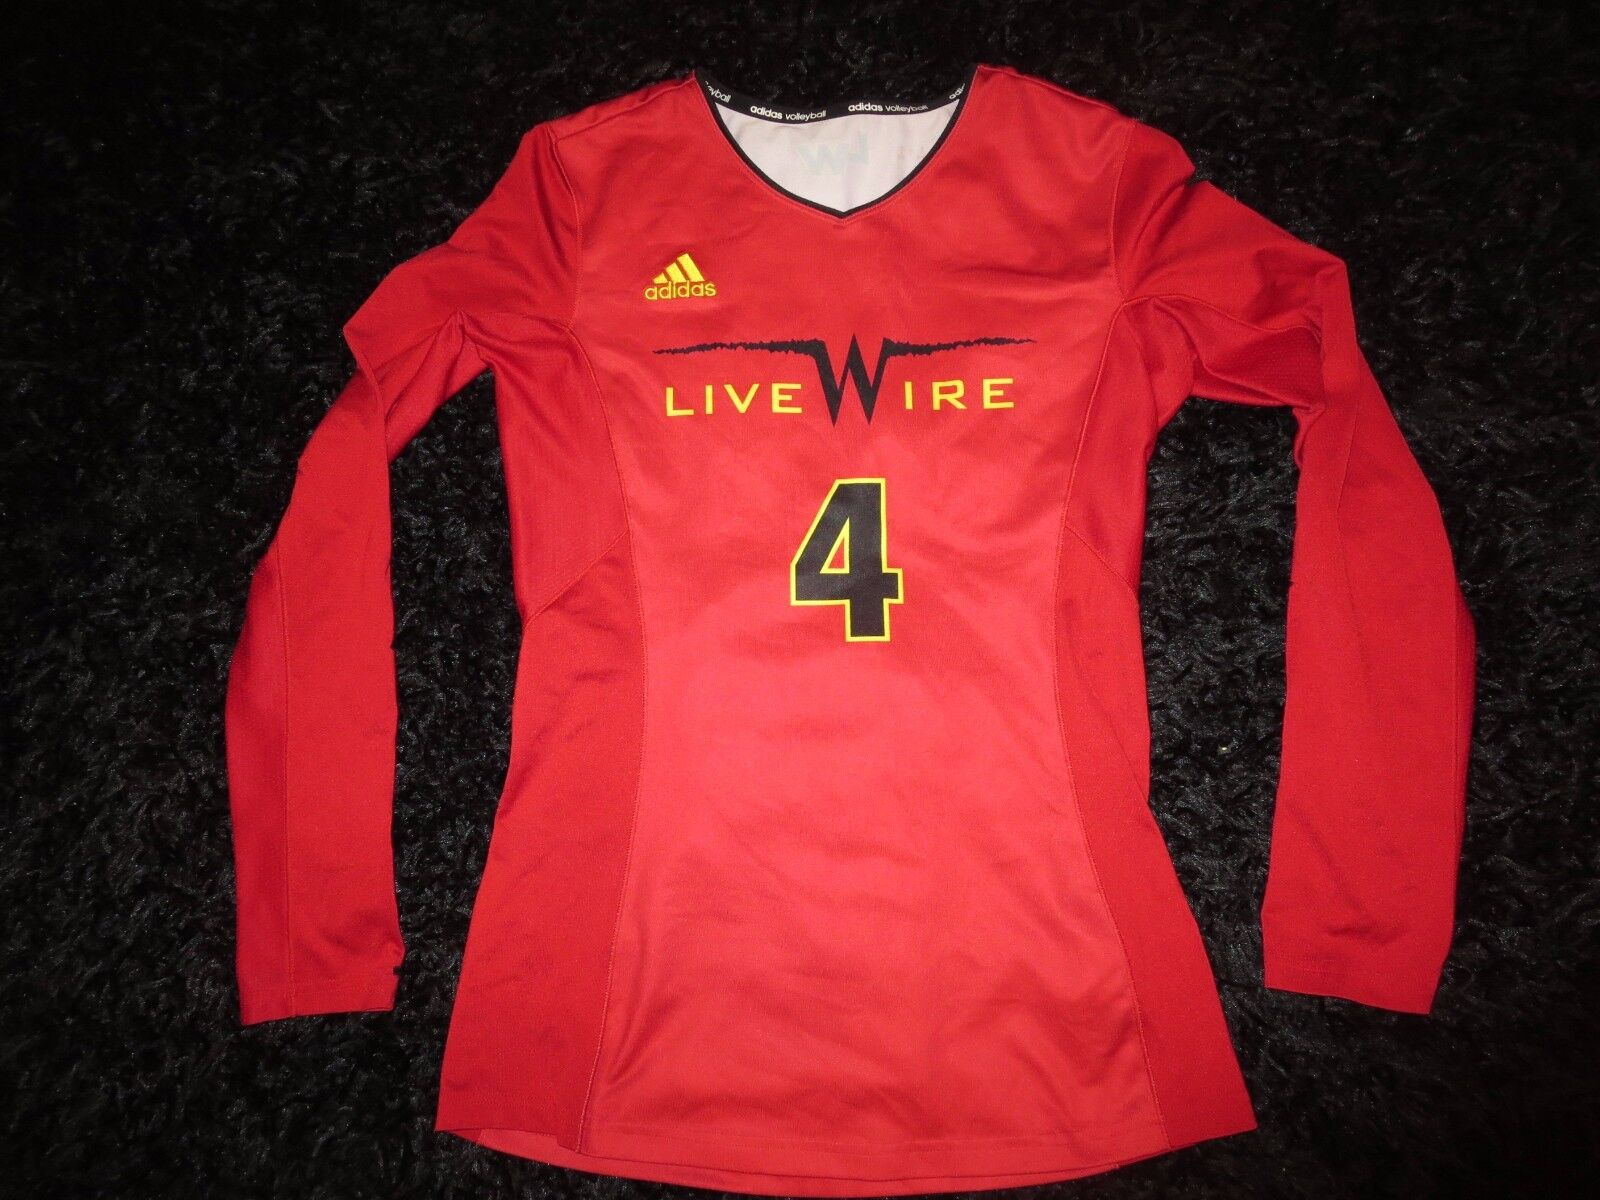 Livewire Arizona Scottsdale Volleyball Club Rot Adidas Trikot Sm S KLEIN Damen